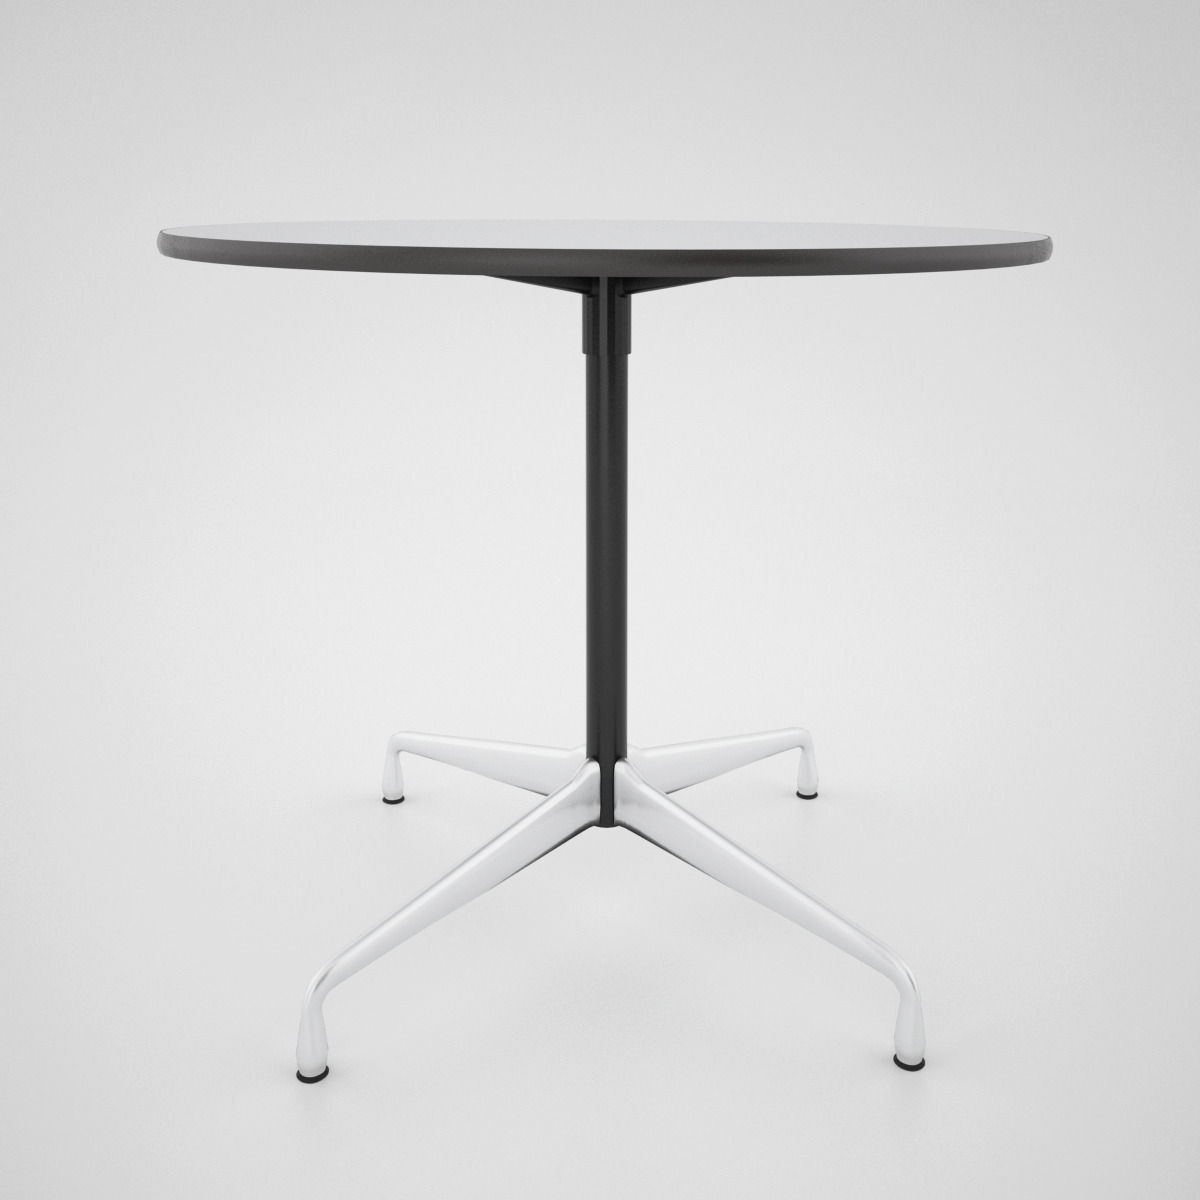 Vitra dsw chair and eames table 3d model max obj fbx for Table eames dsw